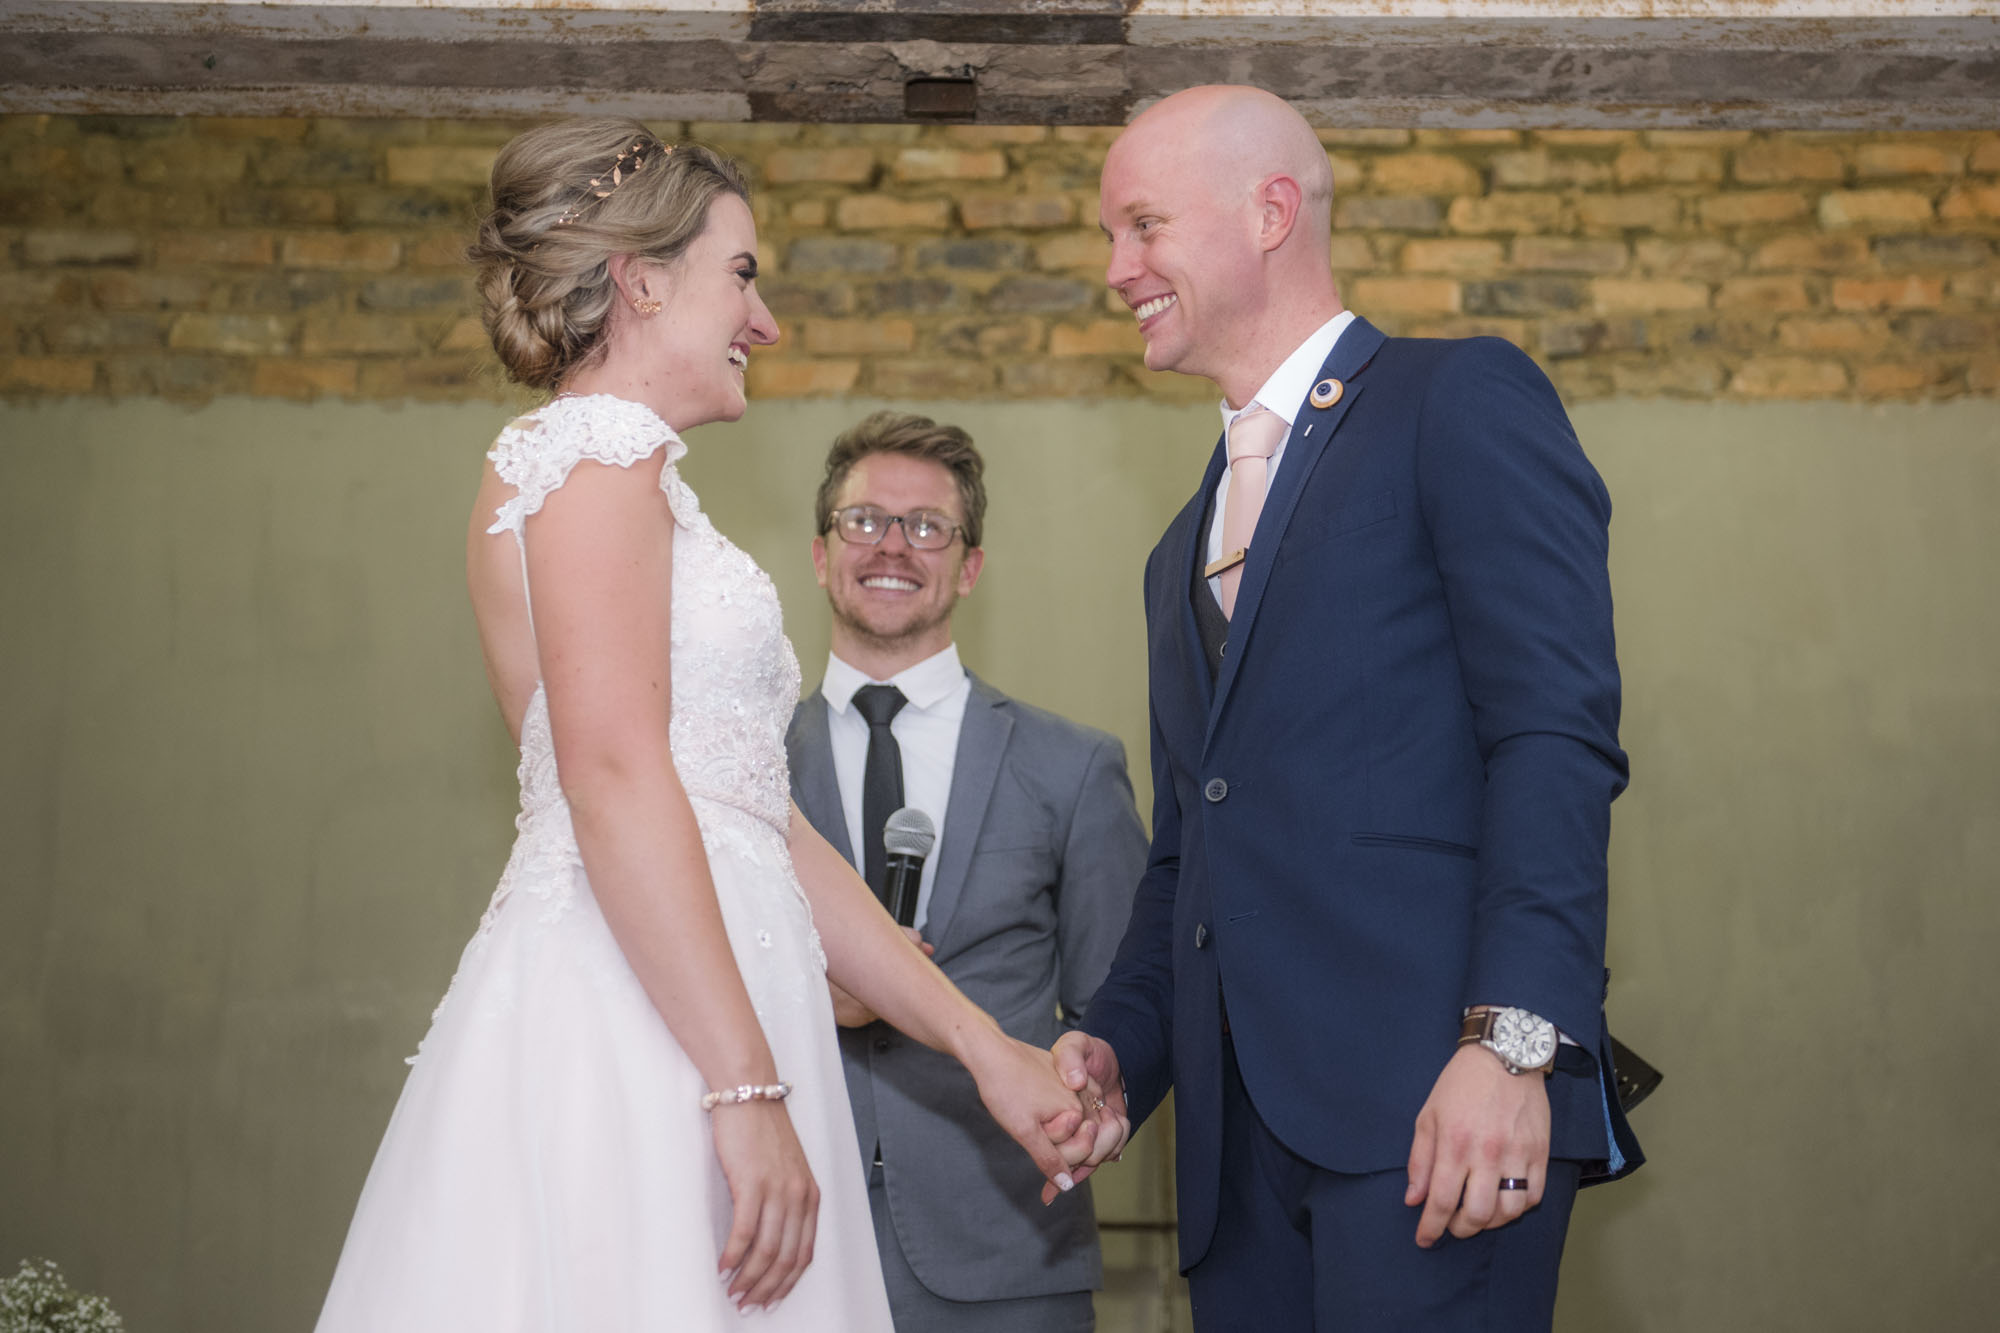 093c-wedding-photography-packages-johannesburg093c-wedding-photography-packages-johannesburg_a.jpg